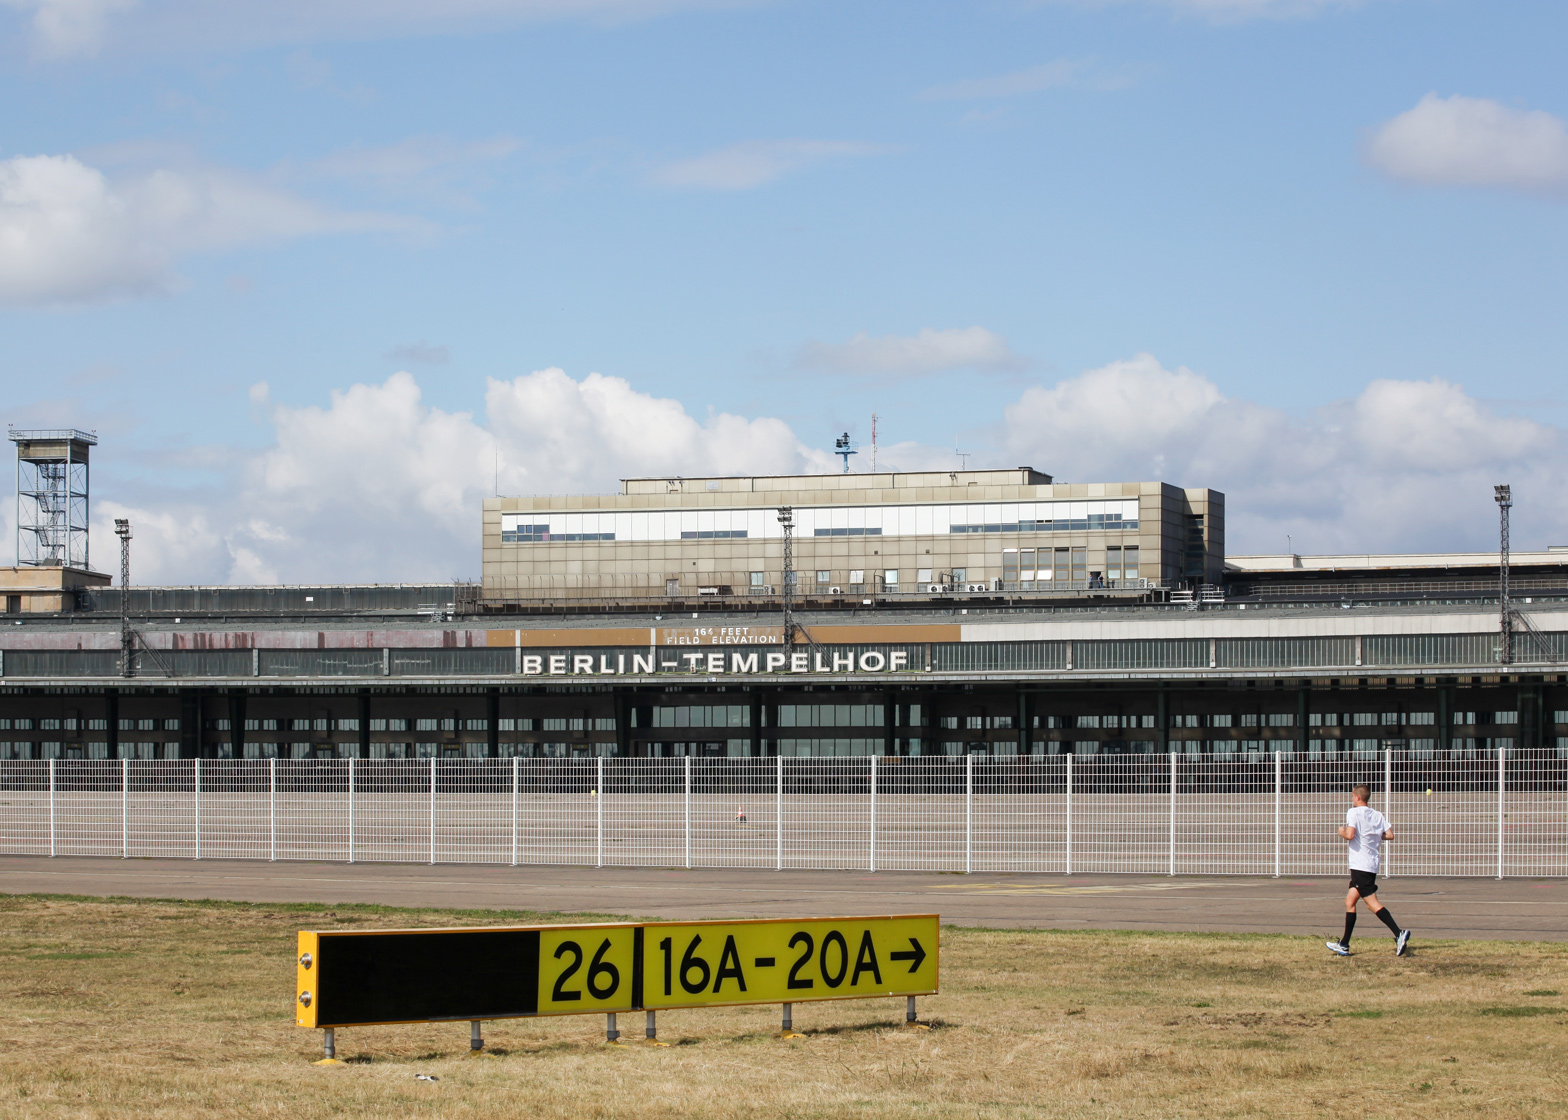 Berlin's decommissioned Tempelhof Airport